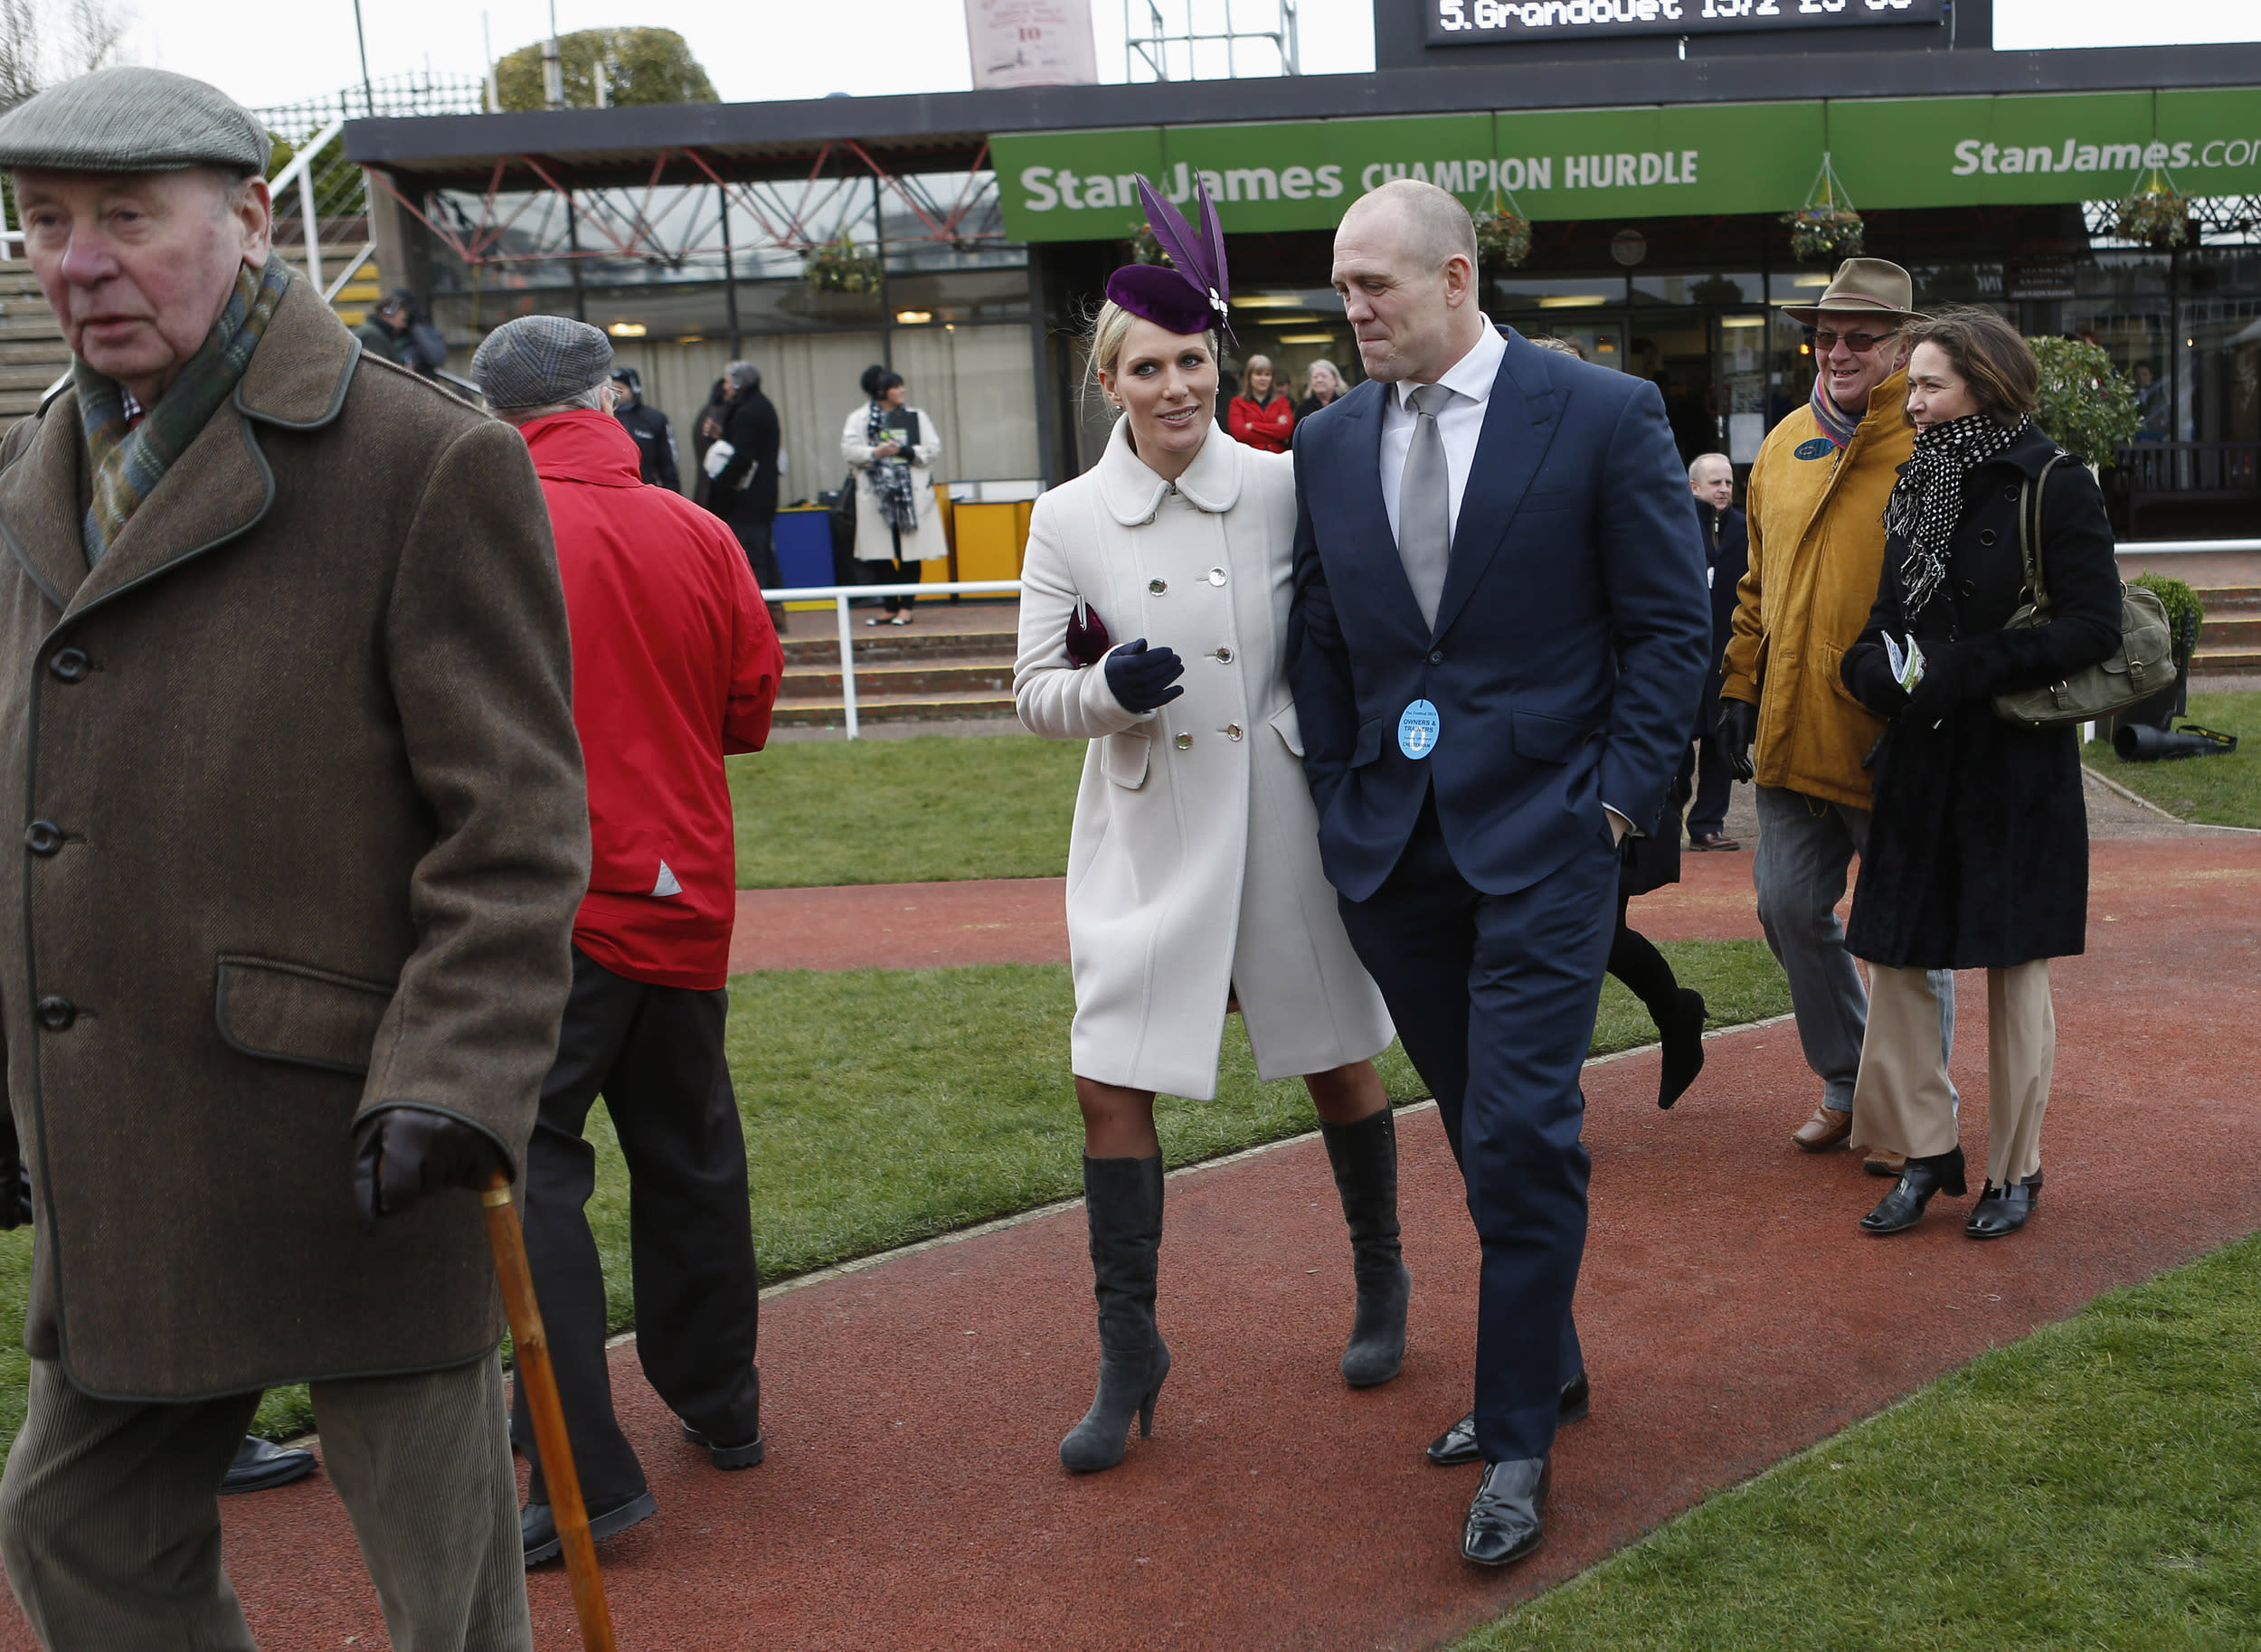 Britain's Zara Phillips (center L) walks with her husband Mike Tindall (center R) in the unsaddling enclosure at the Cheltenham Festival horse racing meet in Gloucestershire, western England March 12, 2013. REUTERS/Eddie Keogh (BRITAIN - Tags: SPORT HORSE RACING ROYALS)